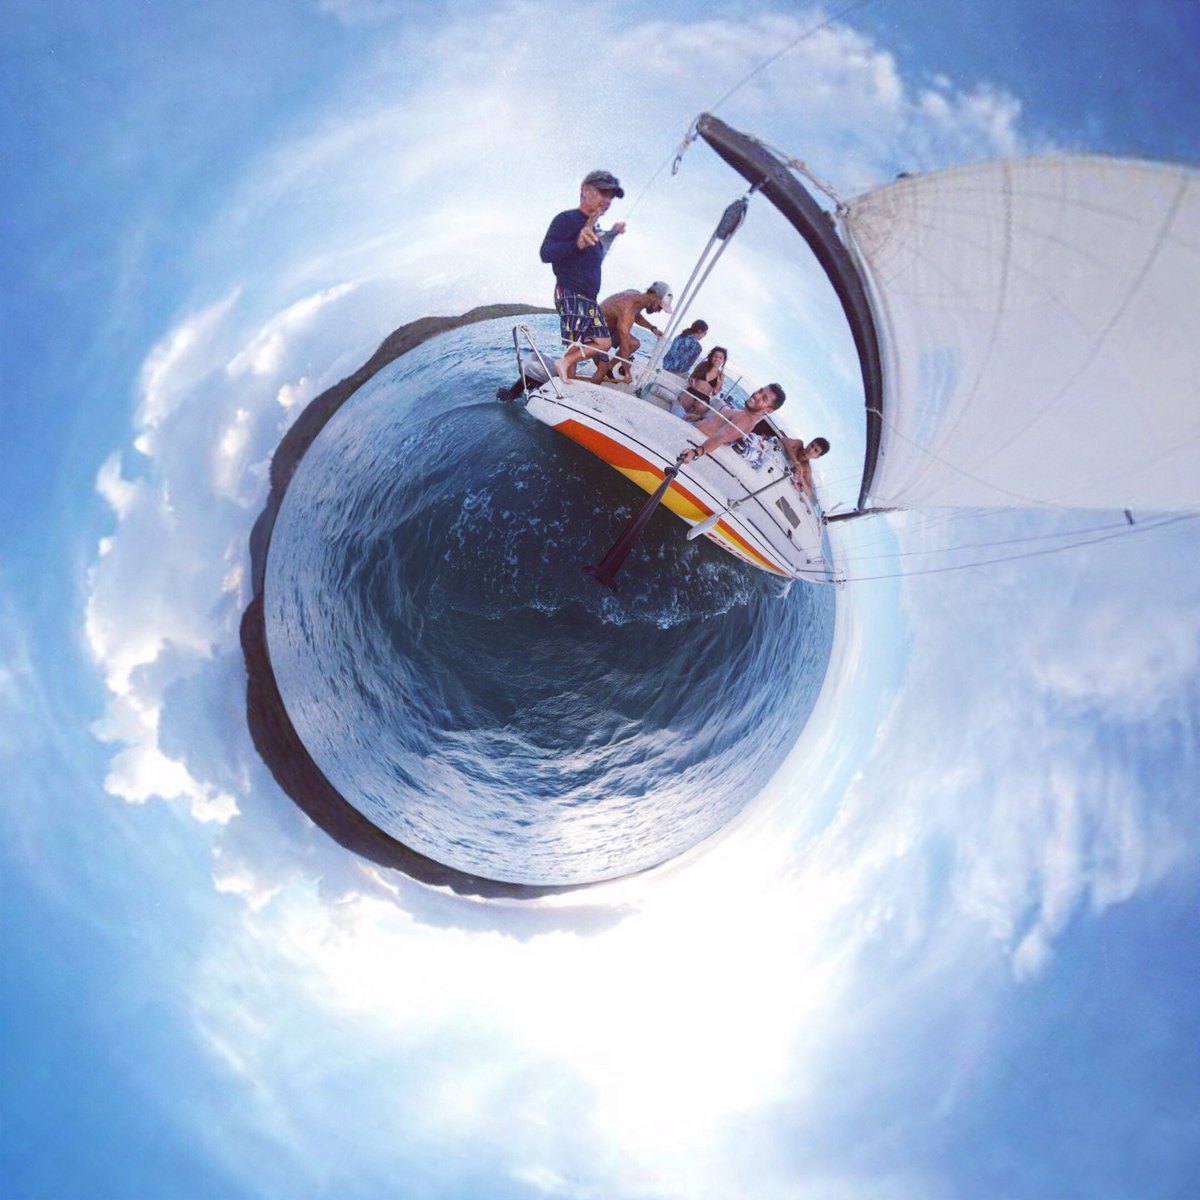 Let your dreams set sail in paradise  #paradise #puertorico #sailing #ocean #bolivia #chile #javicel #tinyplanetcouple #tinyplanet #tiny<br>http://pic.twitter.com/RZF7ysSaEe